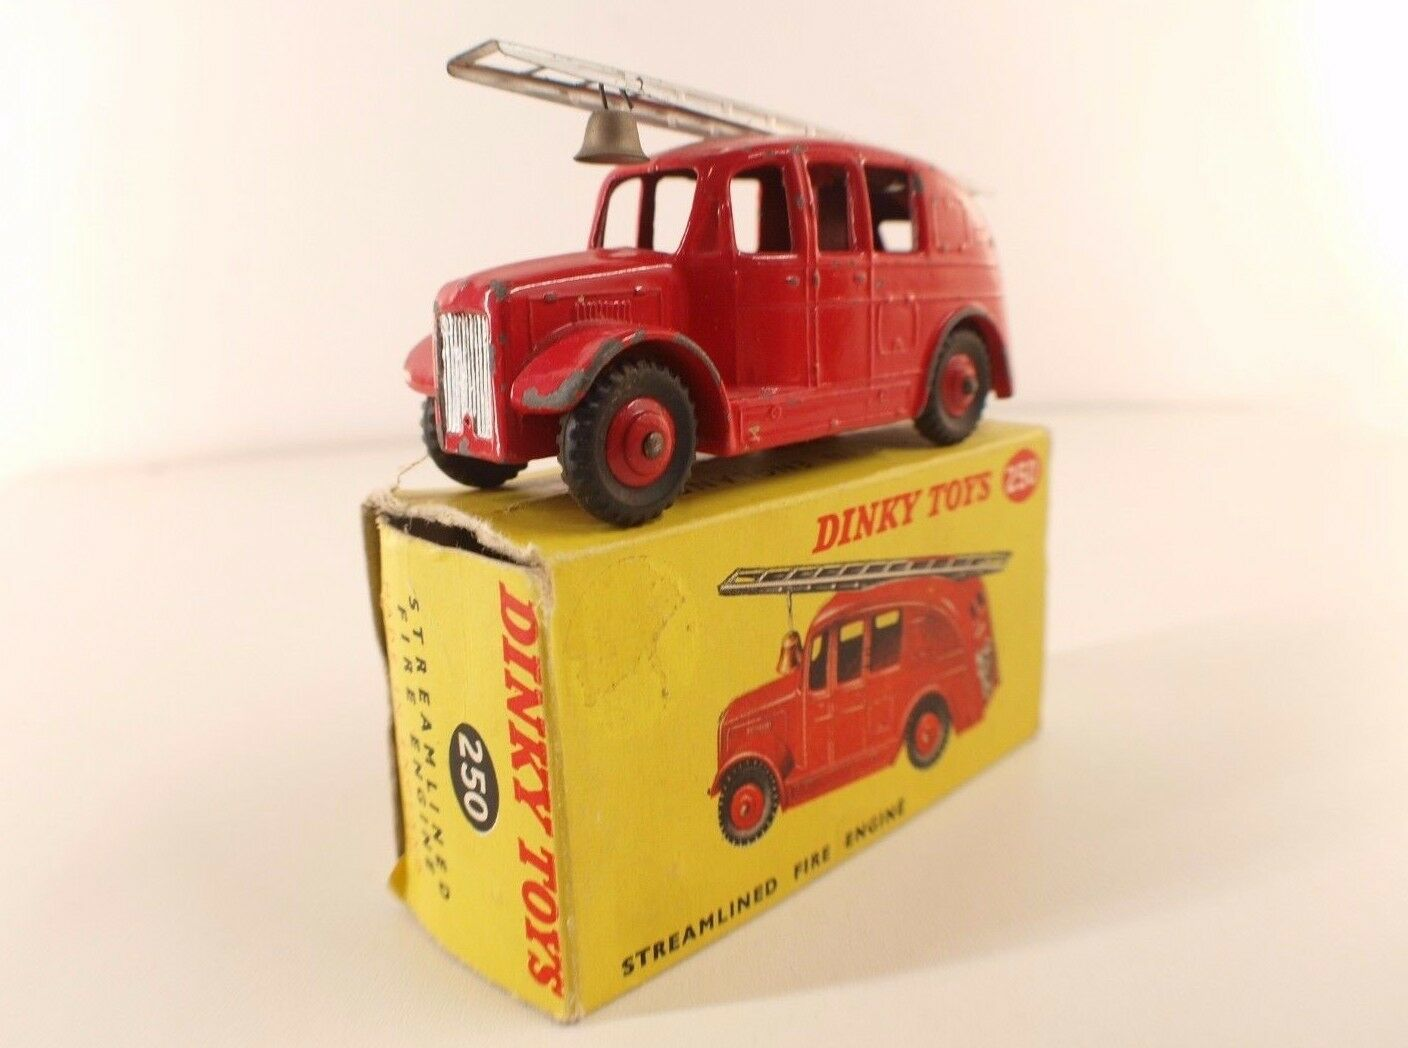 Dinky giocattoli GB No. 250 Streamined Fire Engine Fire combatiente in scatola